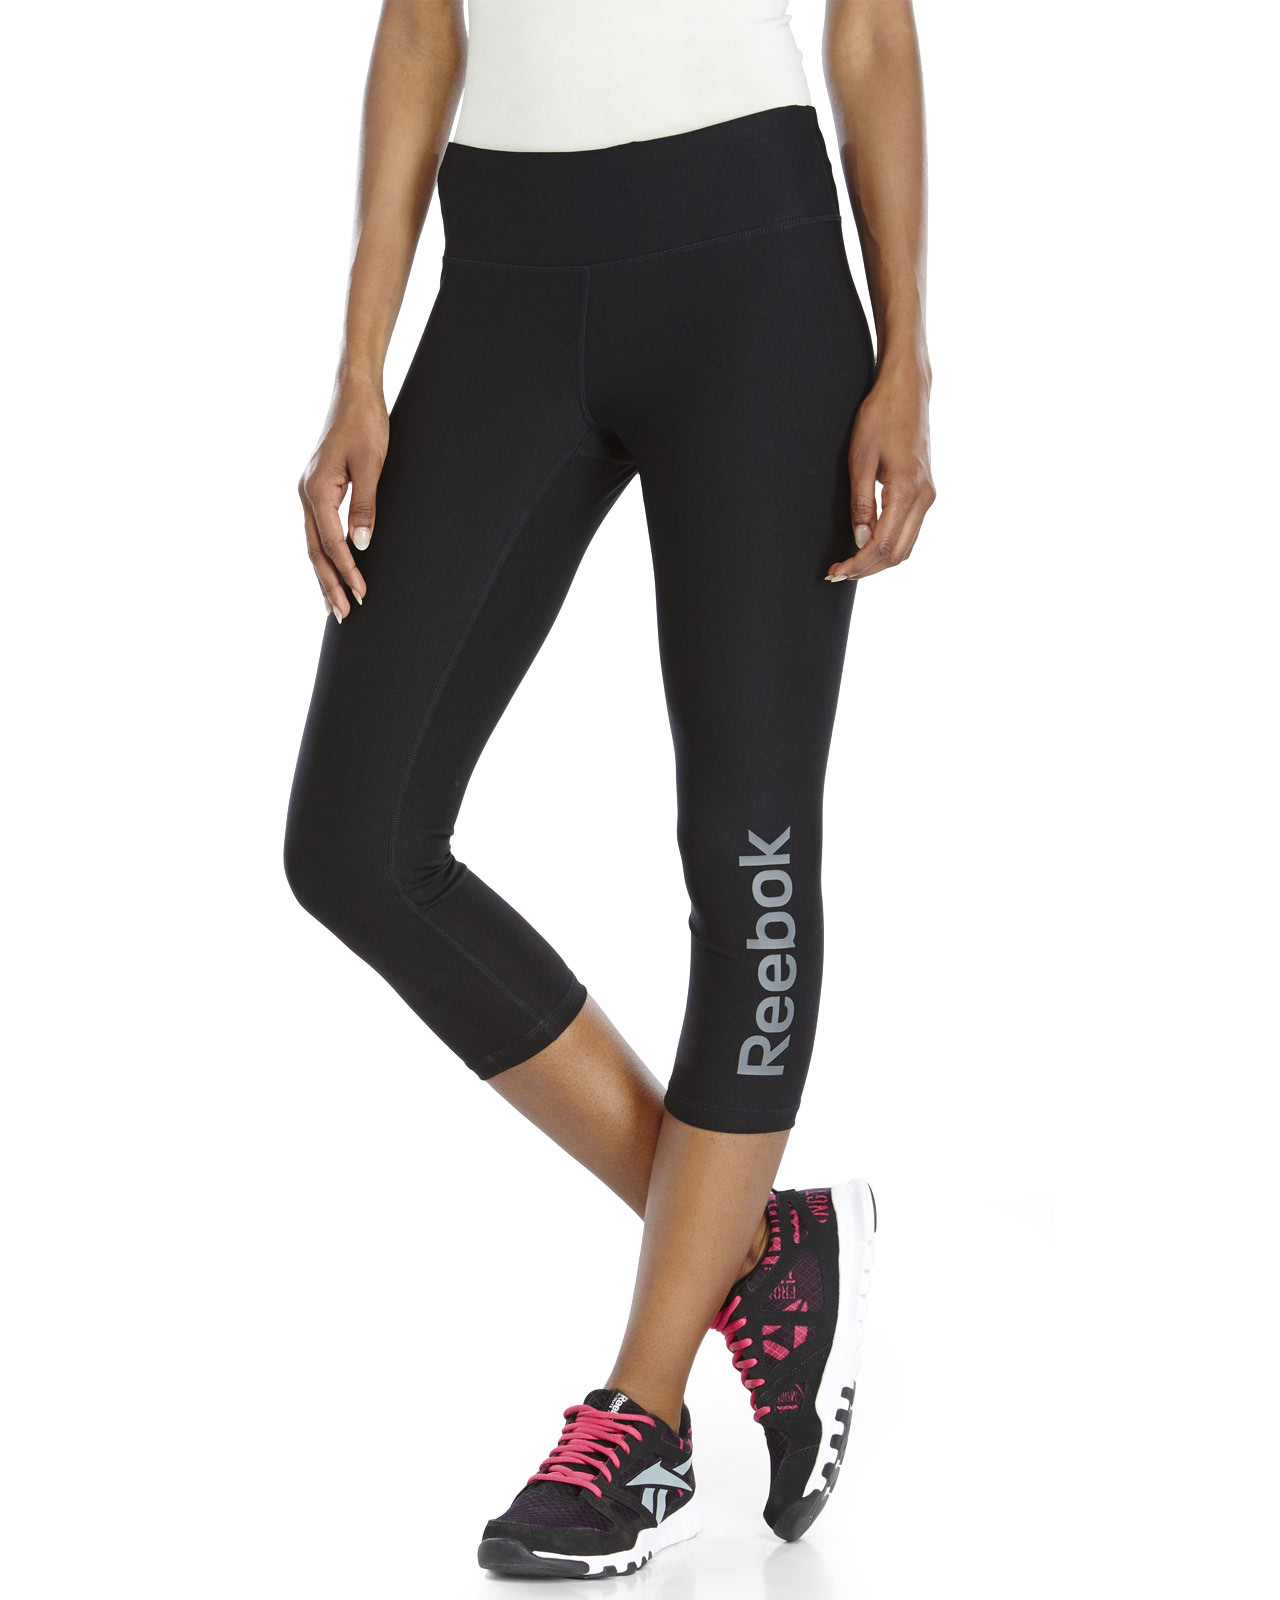 Reebok Logo Athletic Capri Pants in Black | Lyst